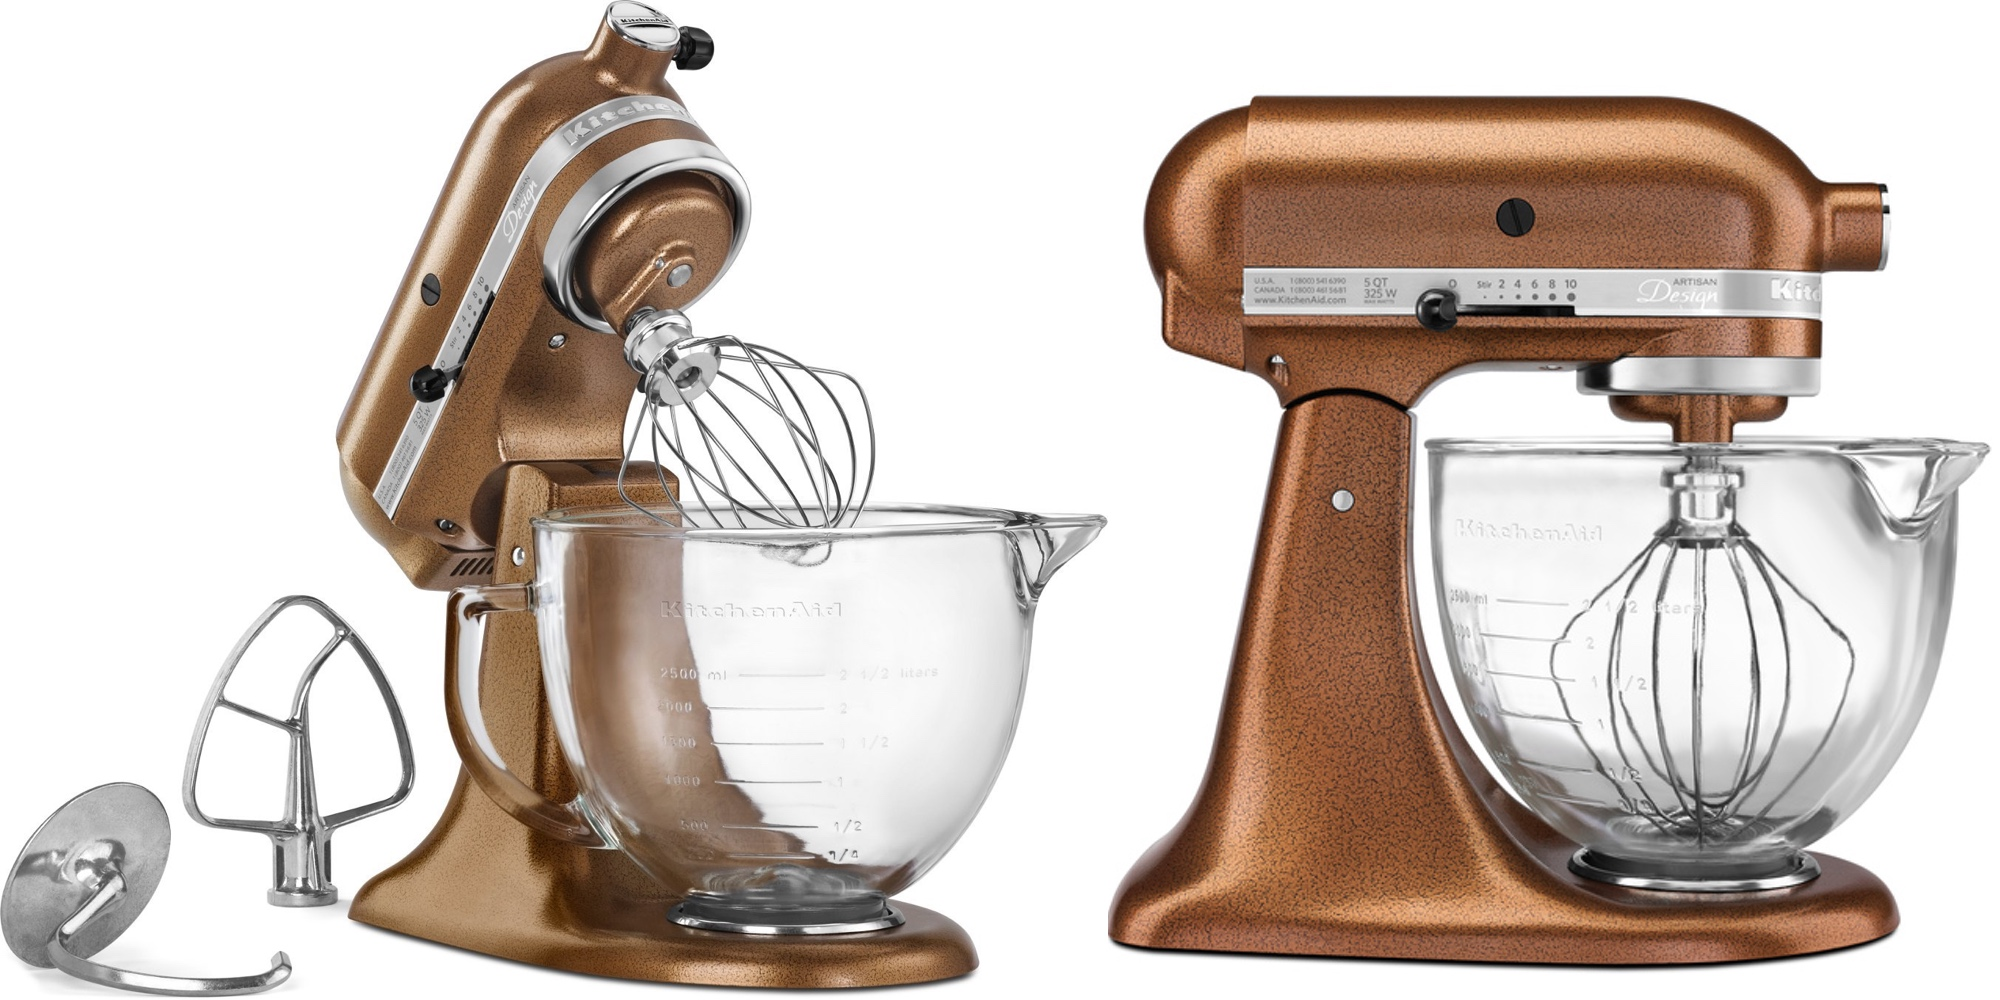 Moving well past its original model, KitchenAid's website lists fours types of stand mixers to cover a wide swath of budgets and needs. Individual series are distinguished .